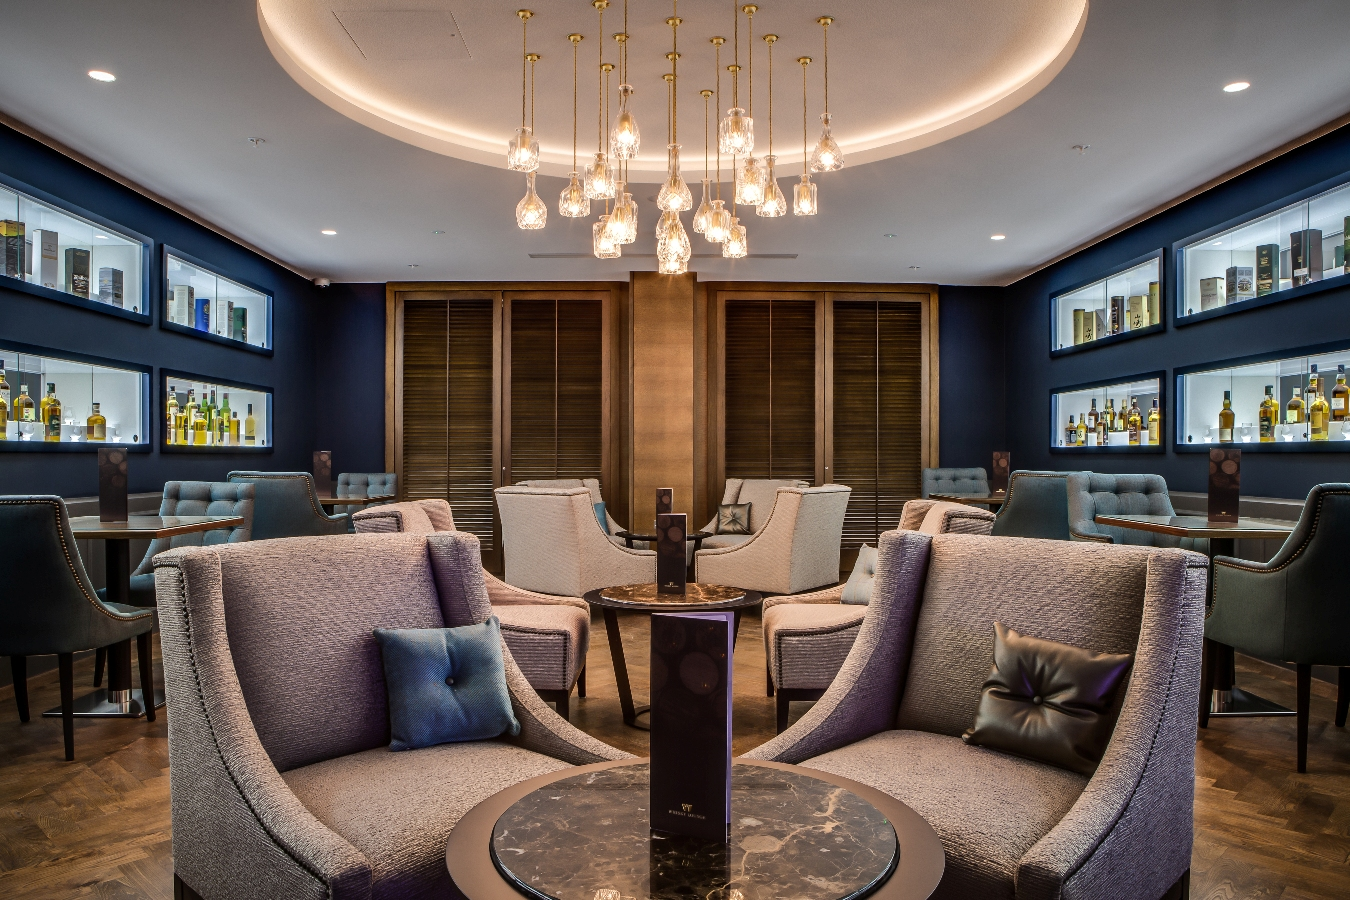 Whisky Lounge at Hilton London Metropole